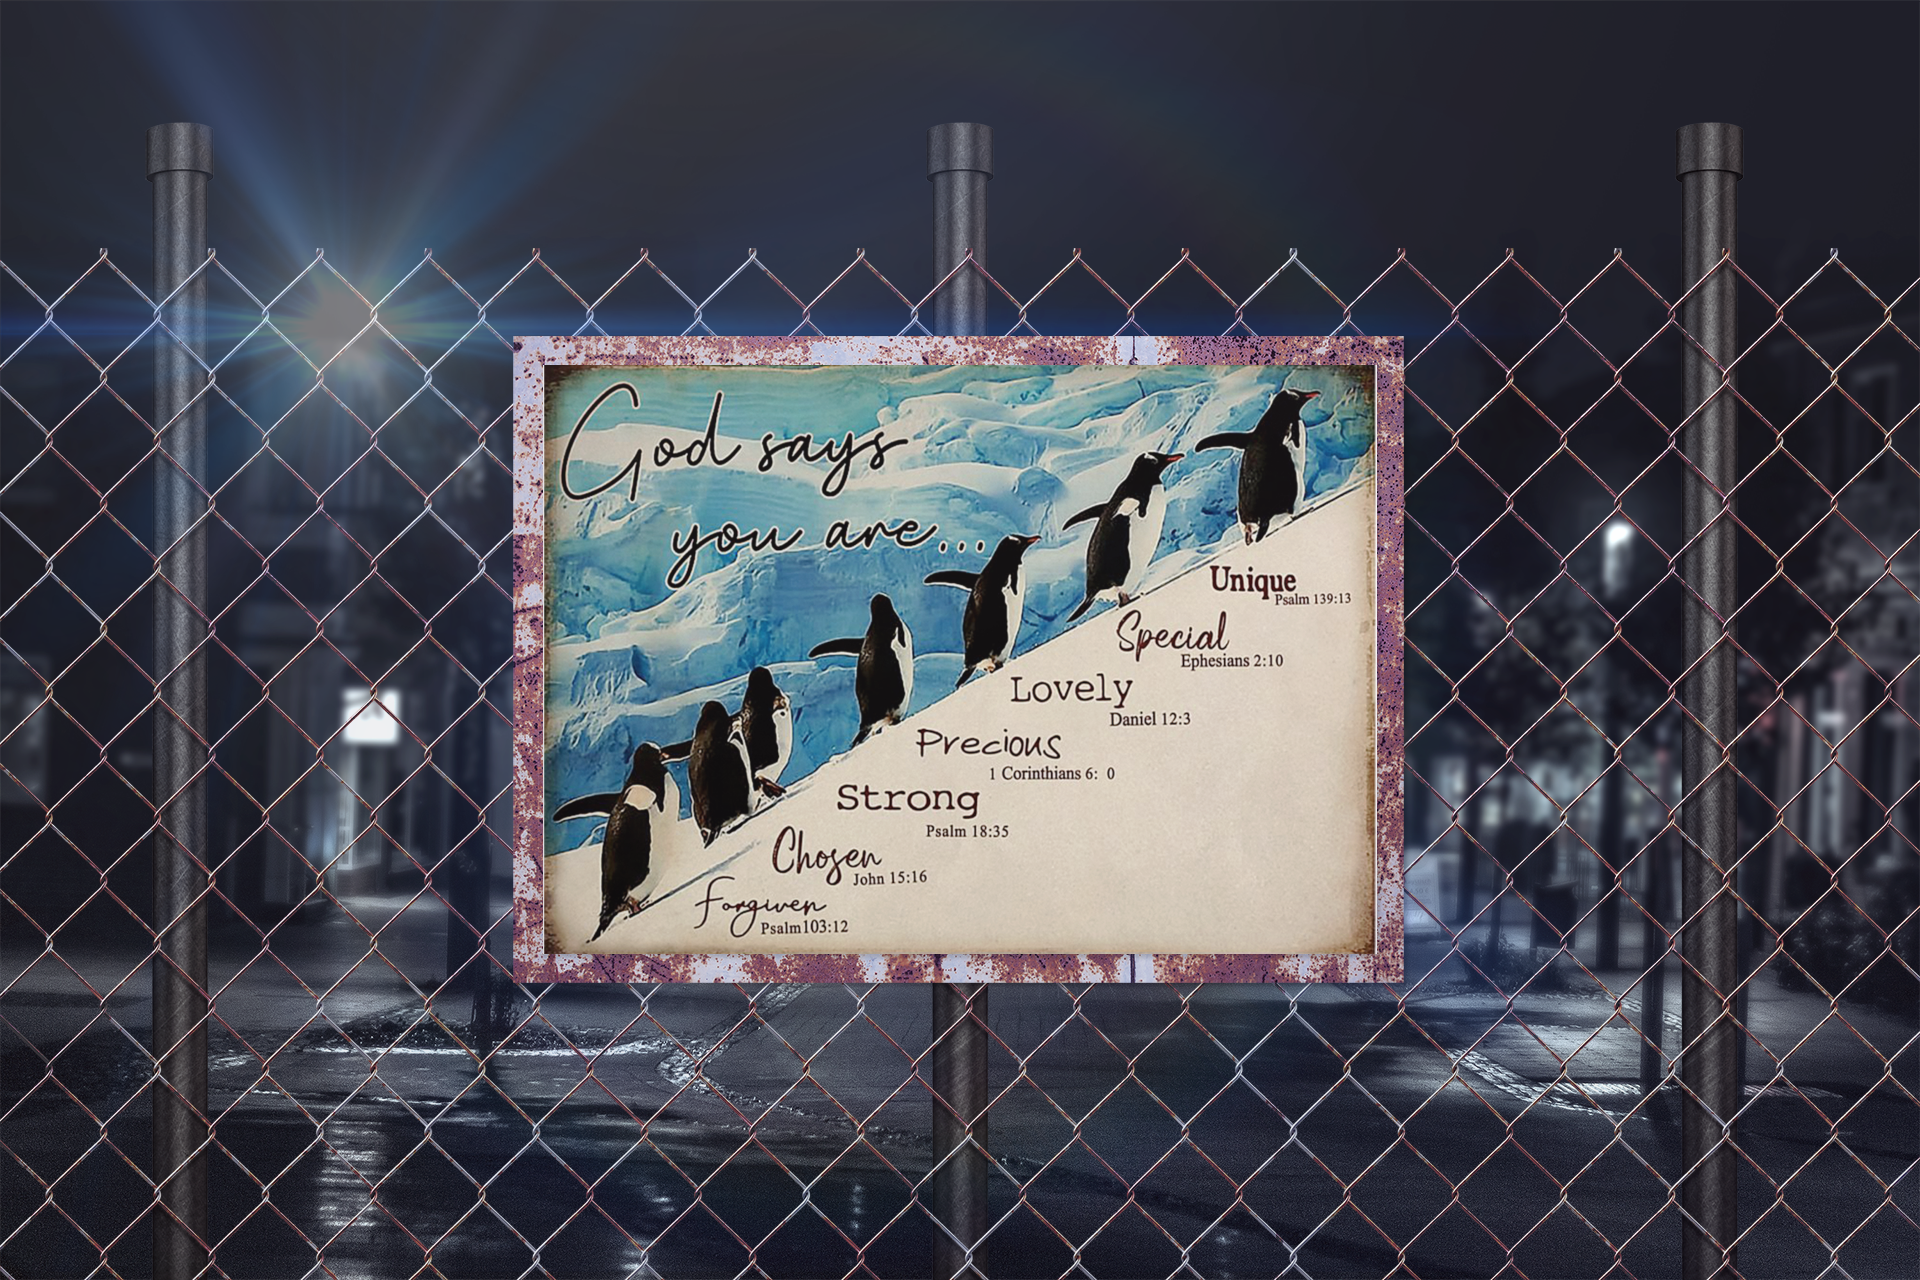 Penguins god says you are unique special poster10